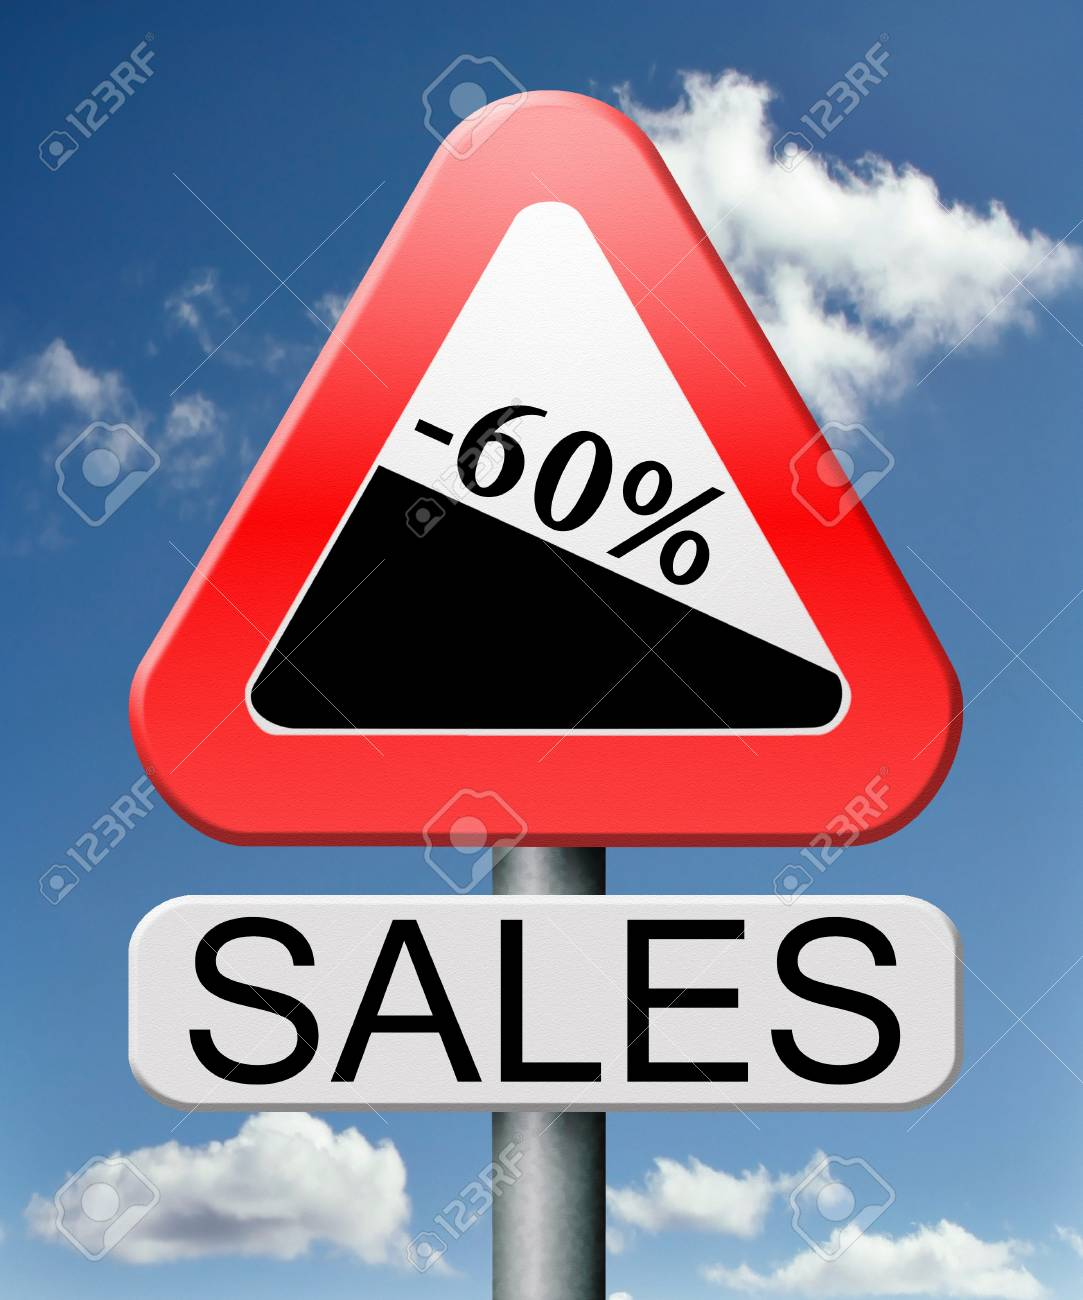 sale 60% off winter off for summer sales text on road signconcept for online web shop internet shopping icon or button. Bargain discount or reduction for extra low price promotion. Stock Photo - 18534759